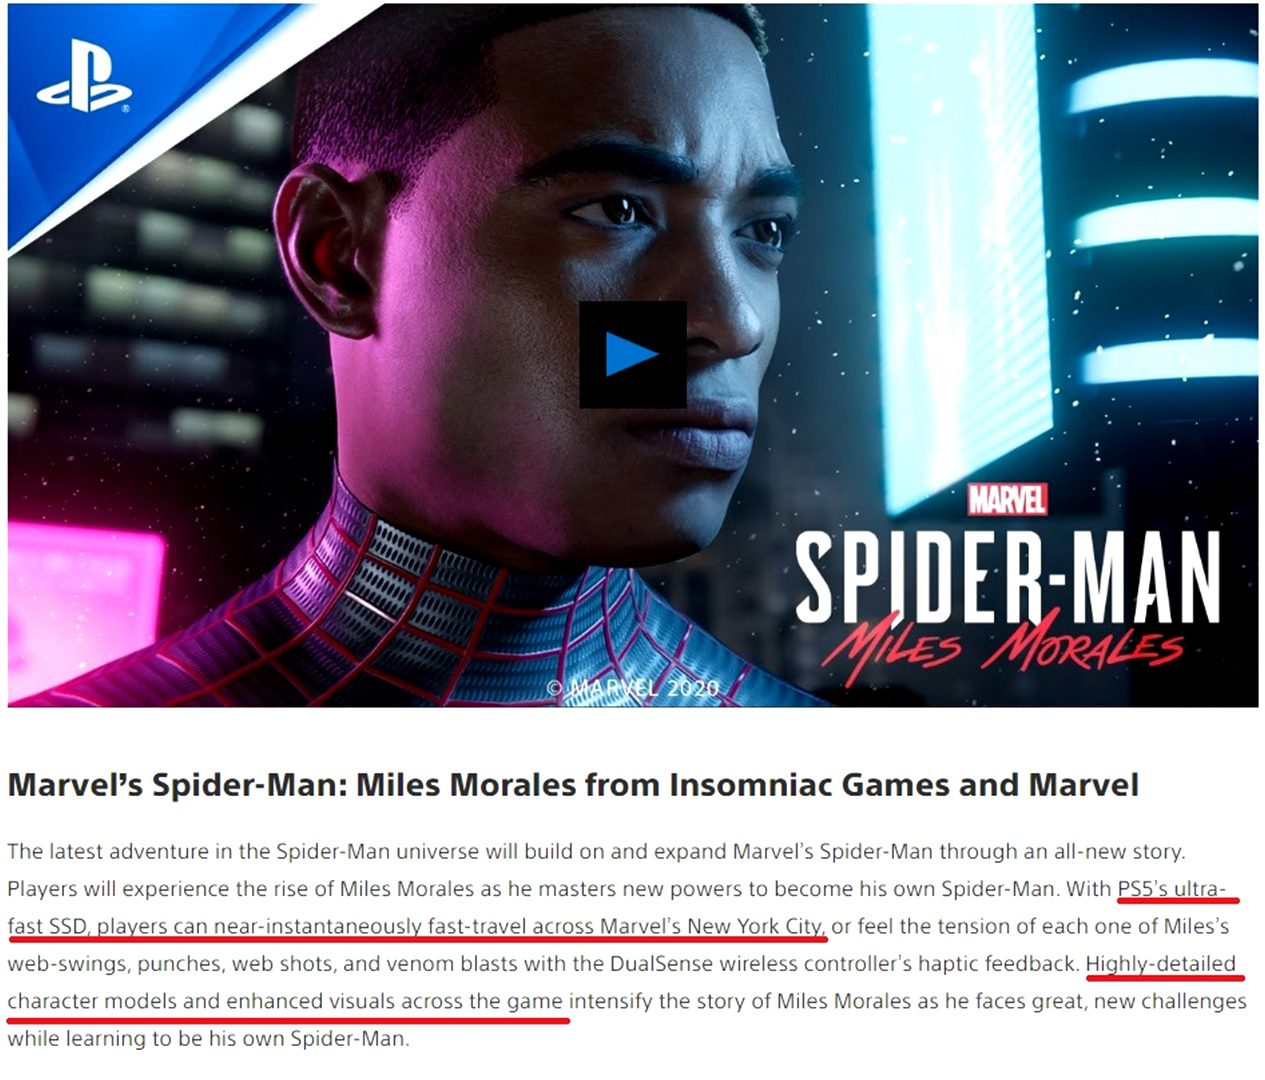 Marvel's Spider-Man: Miles Morales PlayStation 4